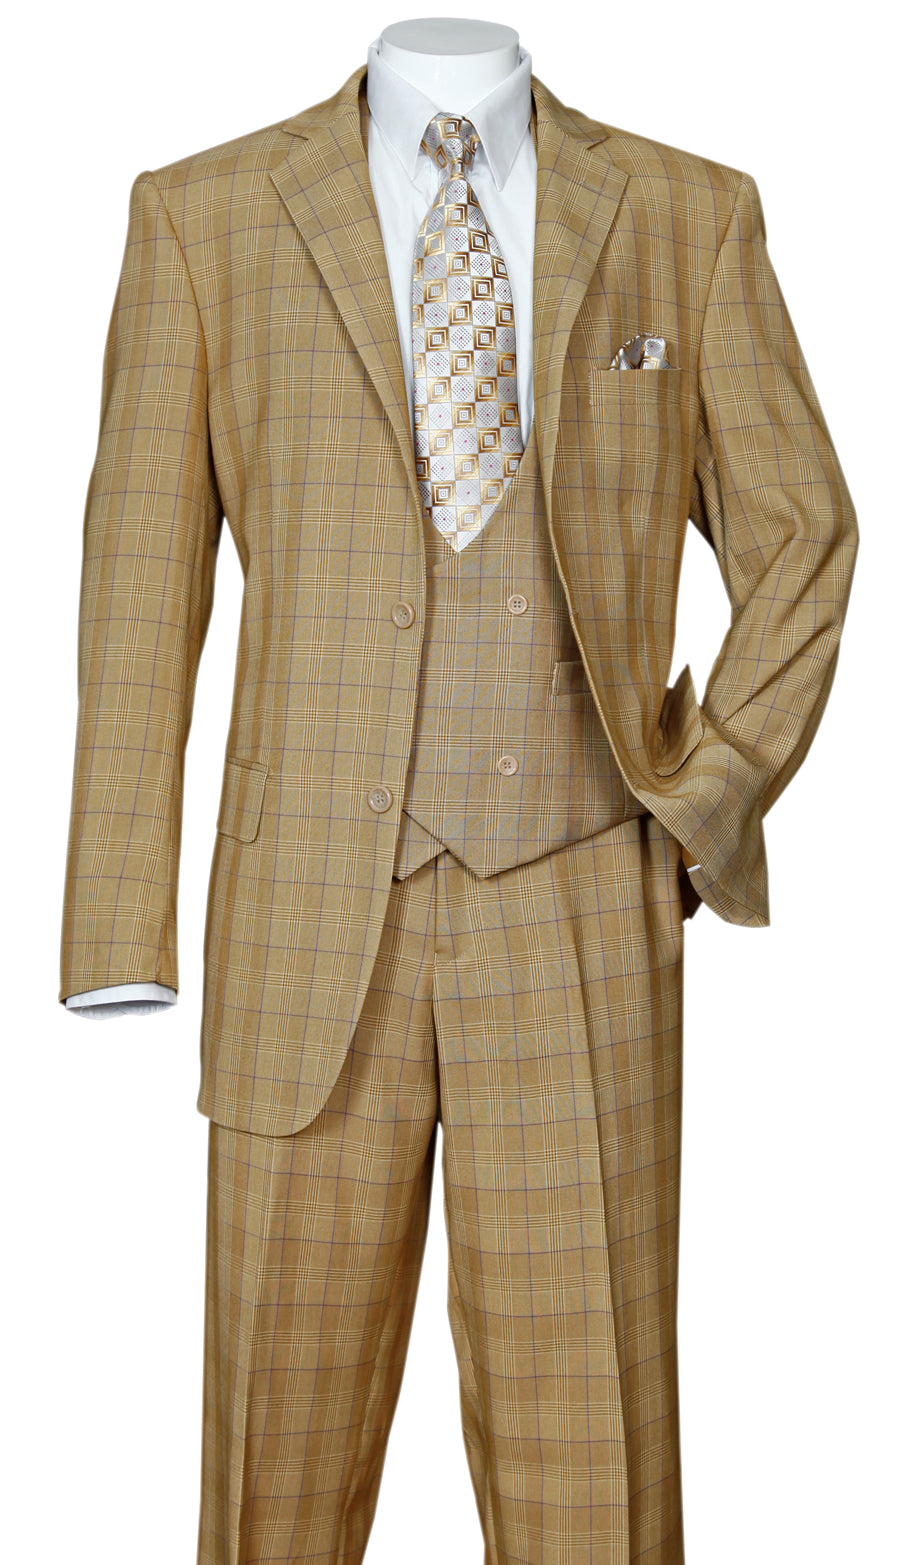 Fortino Landi Suit 5702V6-Tan - Church Suits For Less